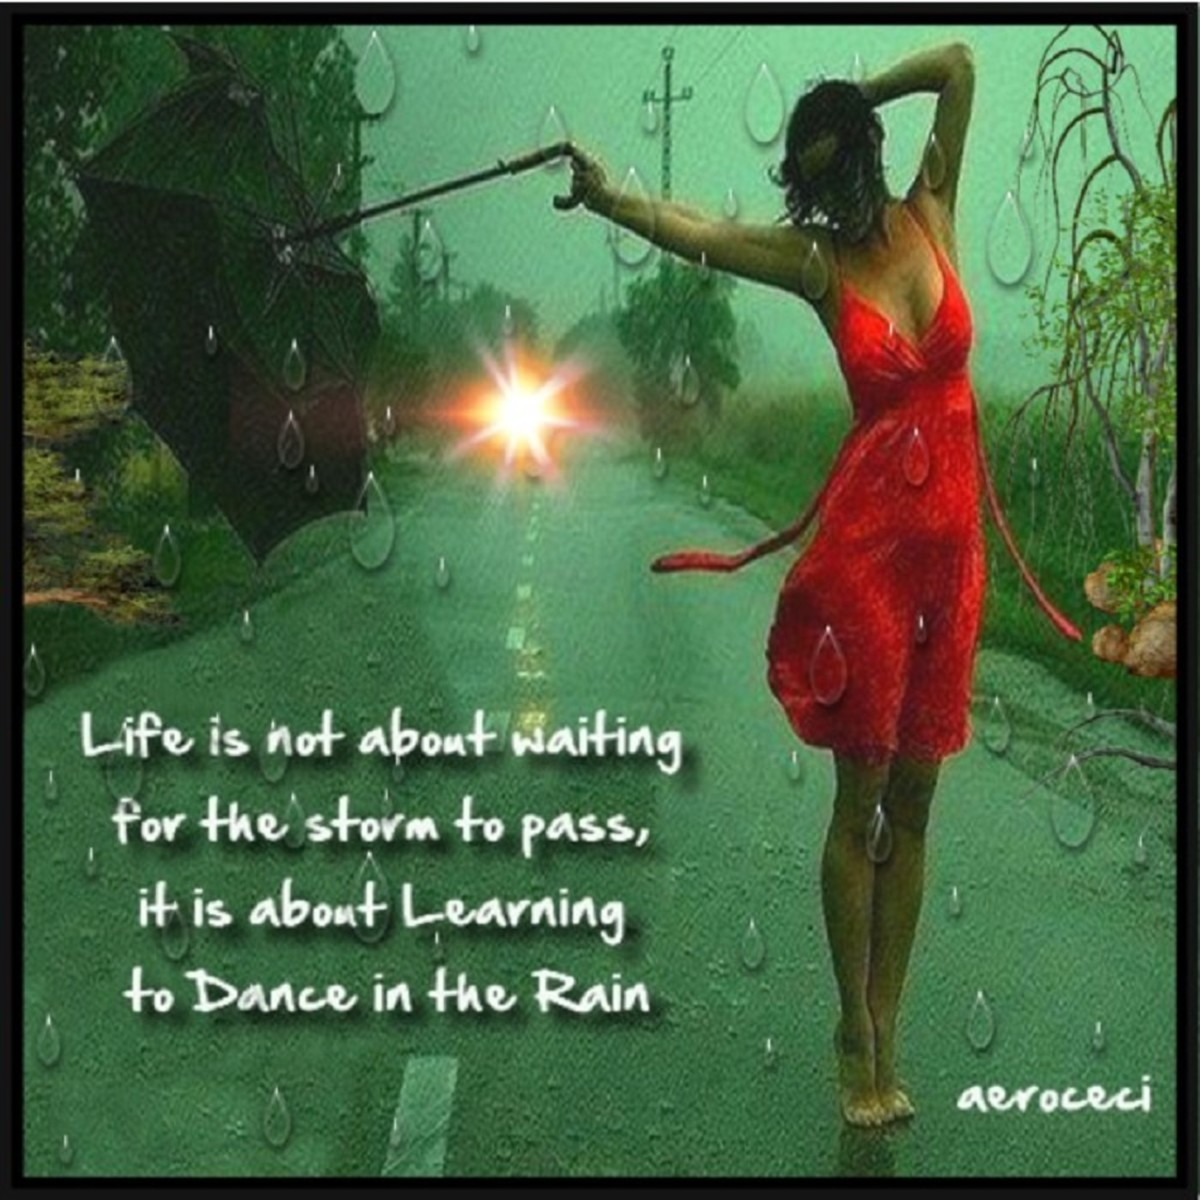 Life Isn't About Waiting for the Storm to Pass… It's About Learning to Dance in the Rain